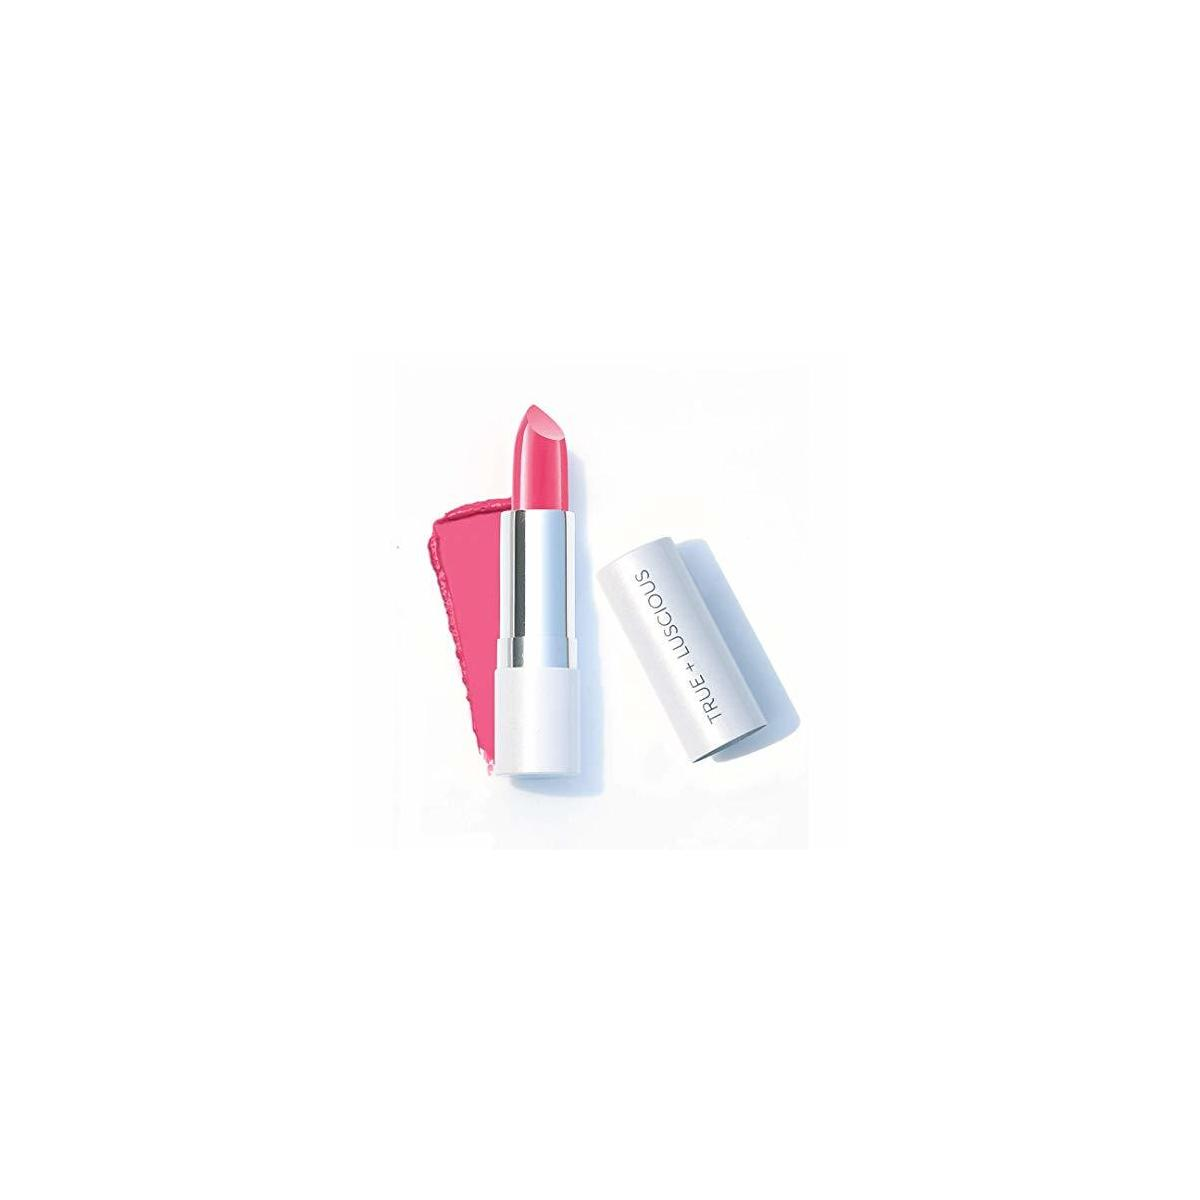 Super Moisture Lipstick by True + Luscious - Clean Formula, Smooth and Hydrating - Vegan and Cruelty Free Lipstick, Non Toxic and Lead Free Shade: Candy Pink - 0.12 oz